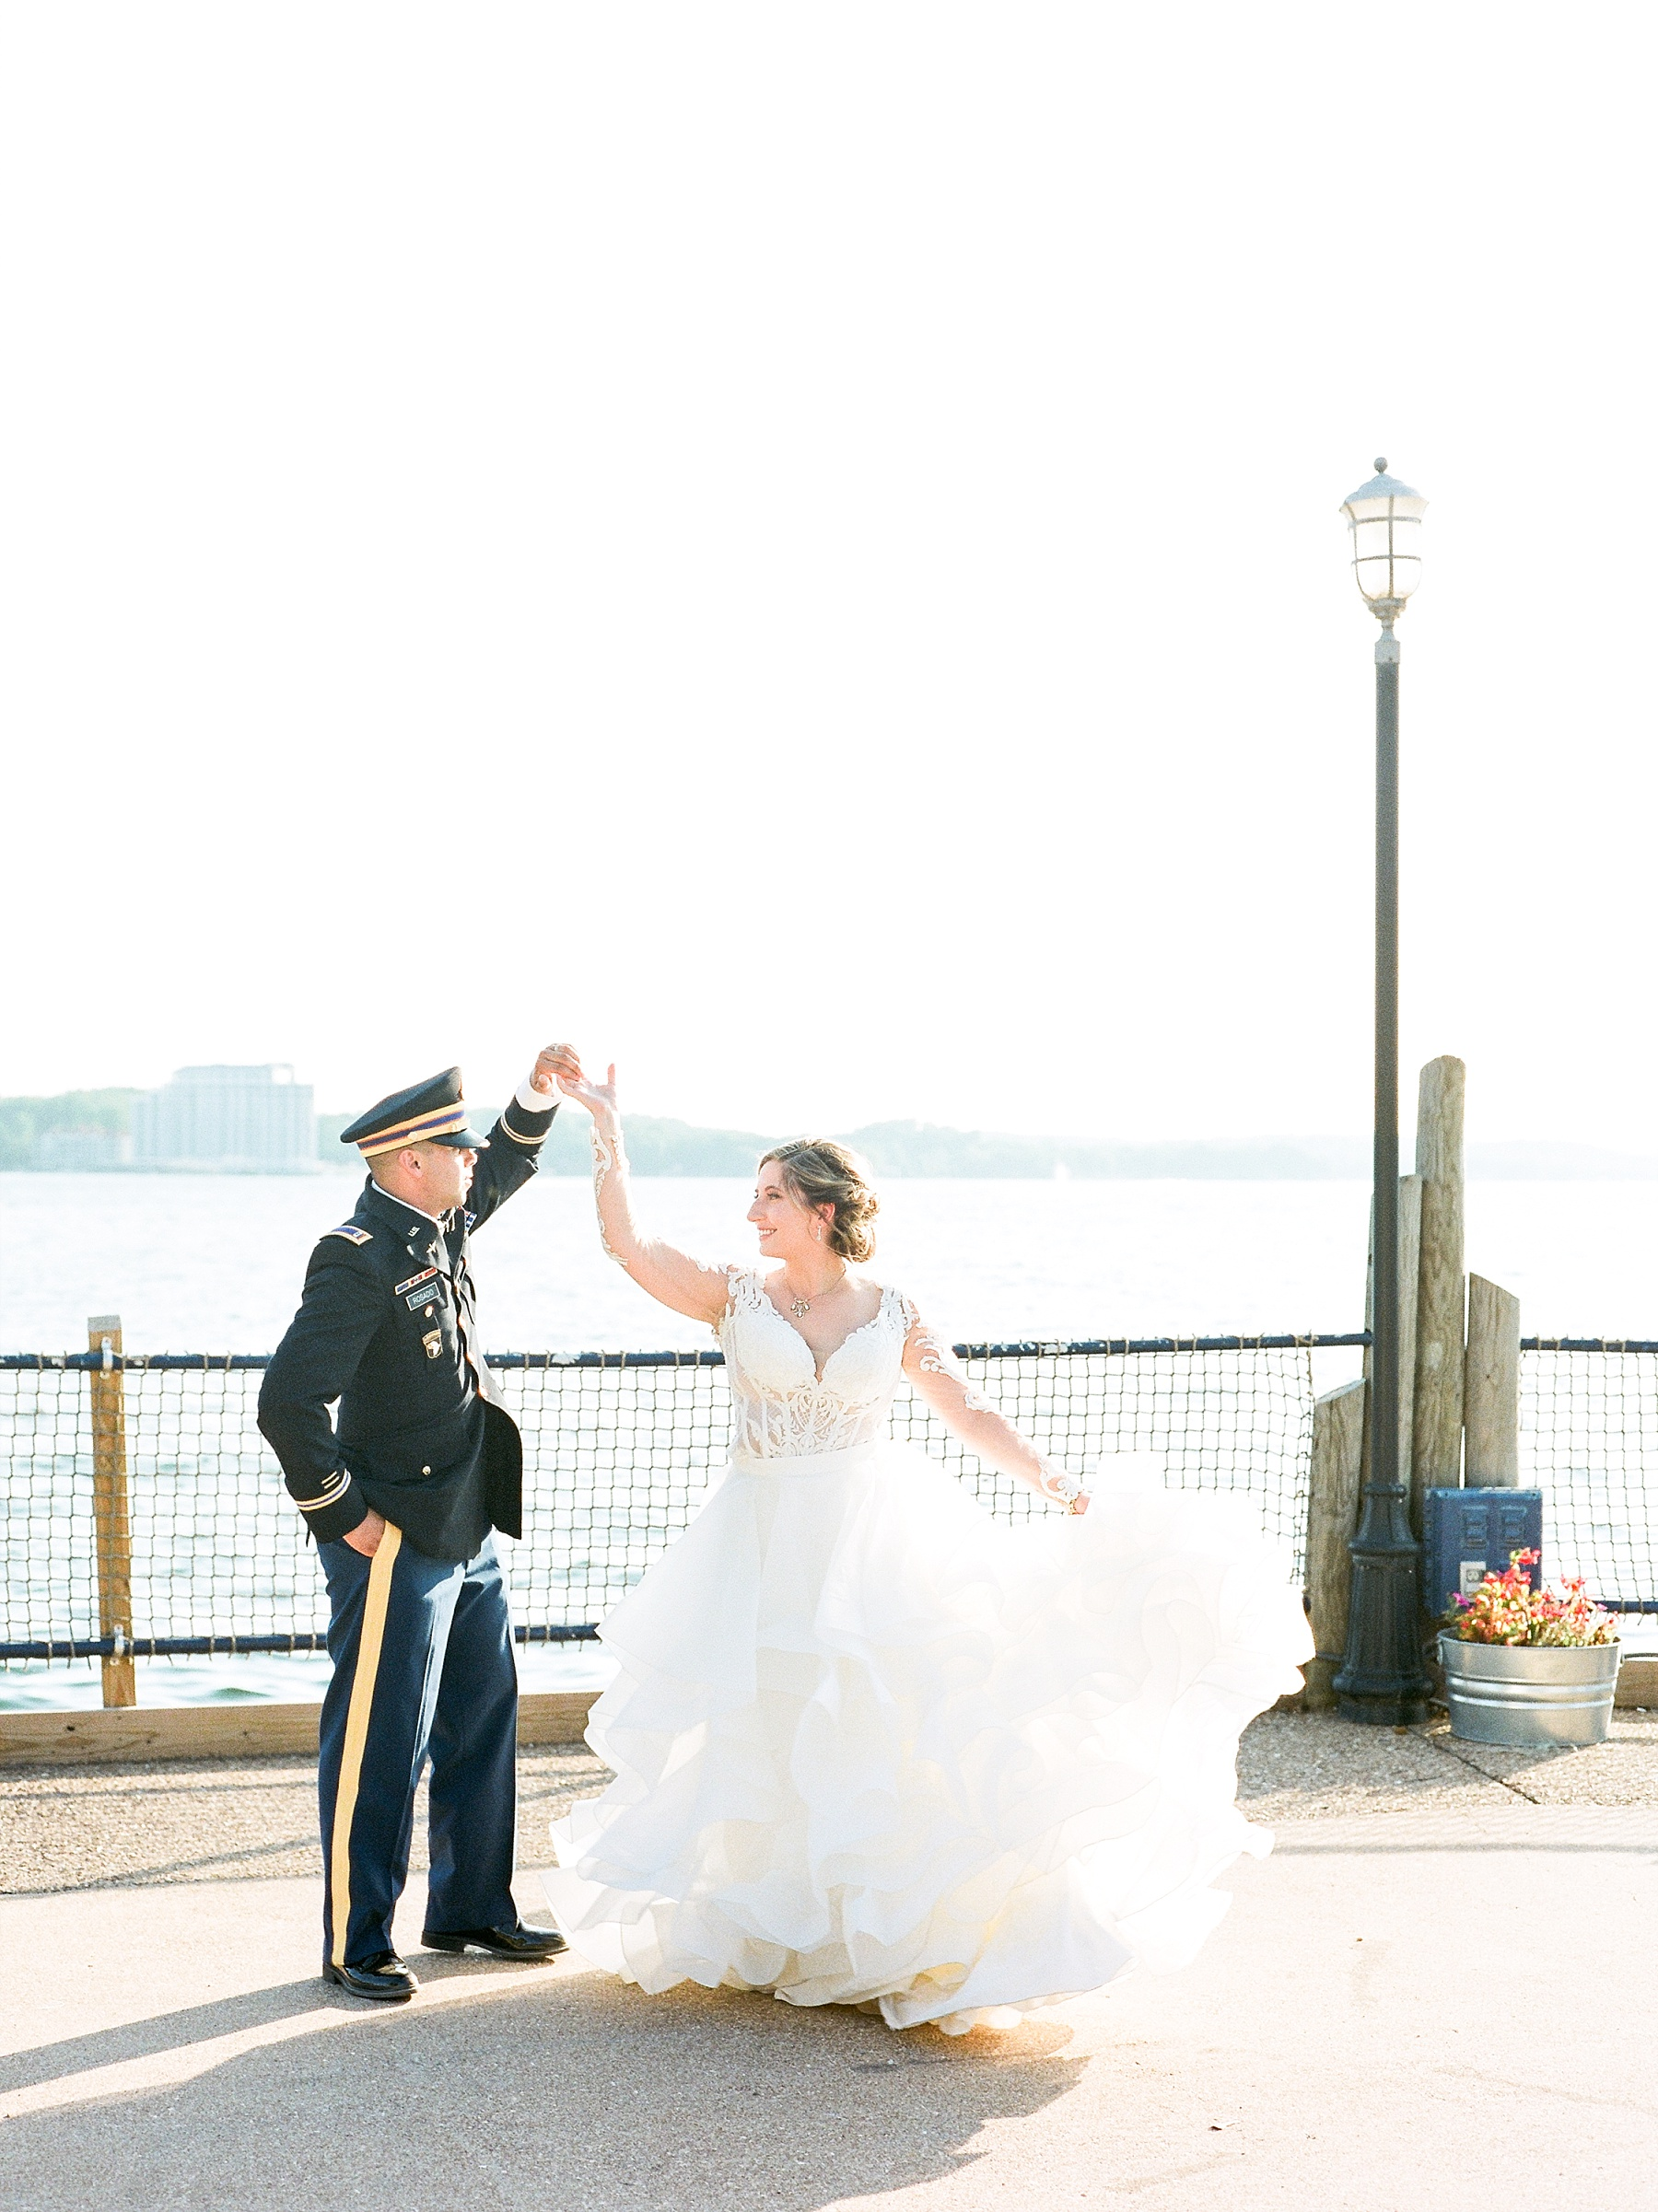 Beachside Sunset Wedding At Lodge Of Four Seasons At Lake Of The Ozarks By Kelsi Kliethermes Photography_0033.jpg